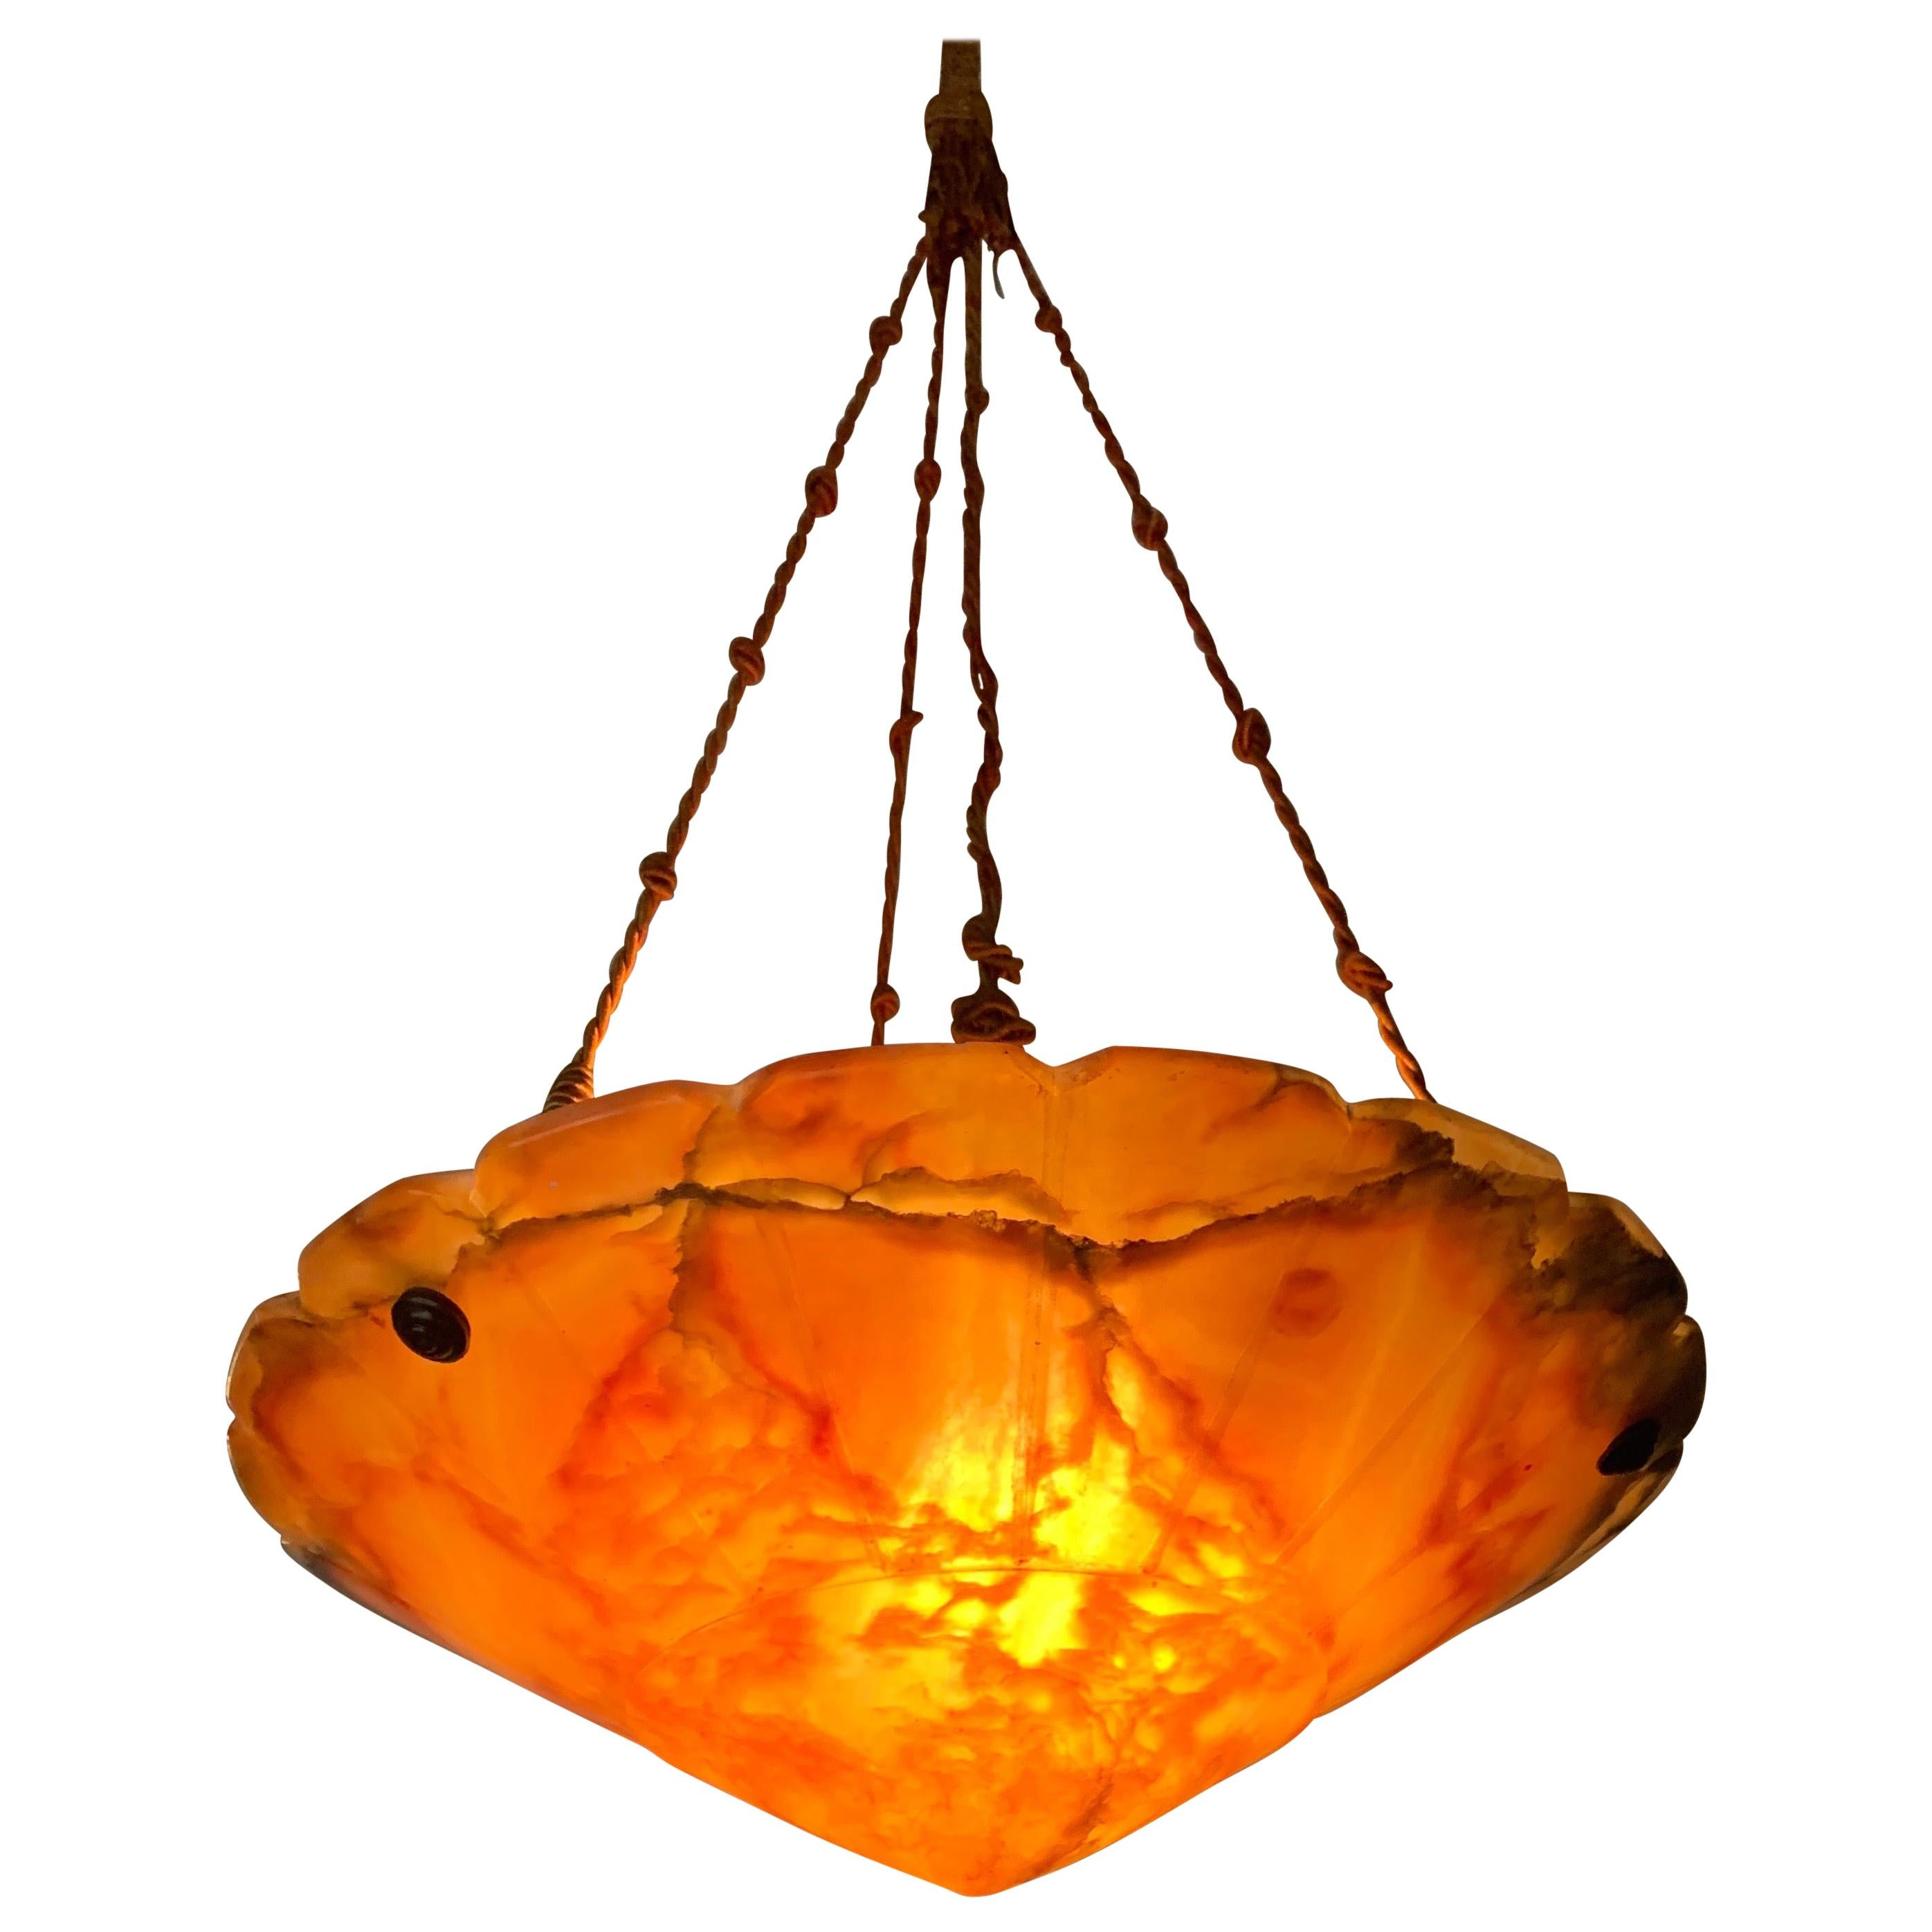 Exceptional Shape 'Supernova' Alabaster and Rope Arts & Crafts Pendant / Fixture